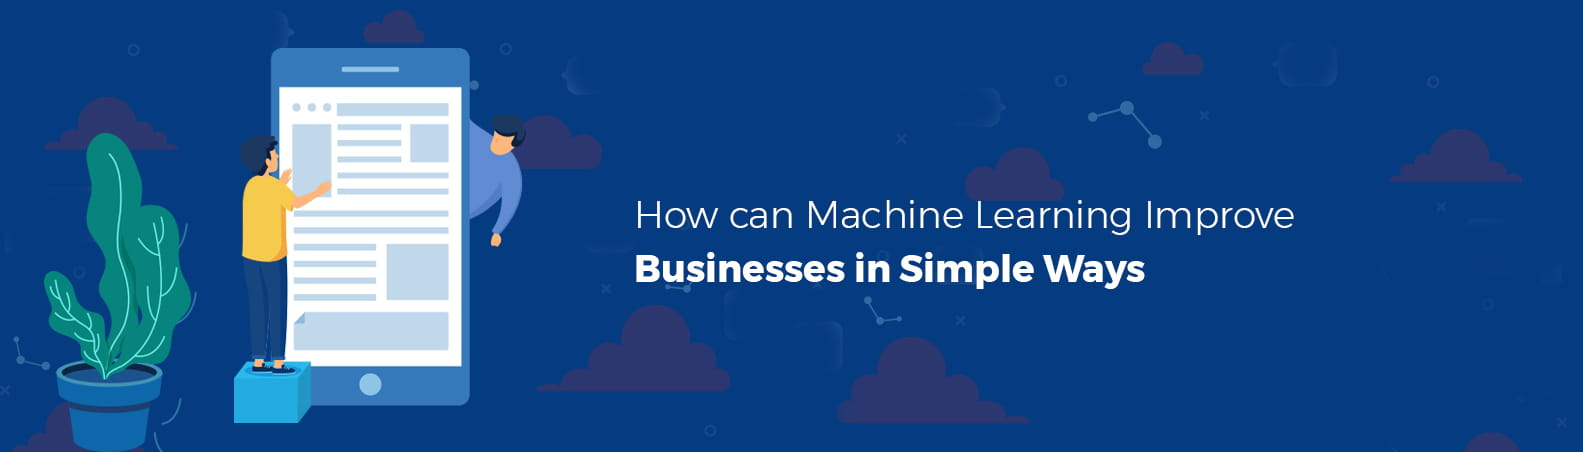 How can Machine Learning Improve Businesses in Simple Ways